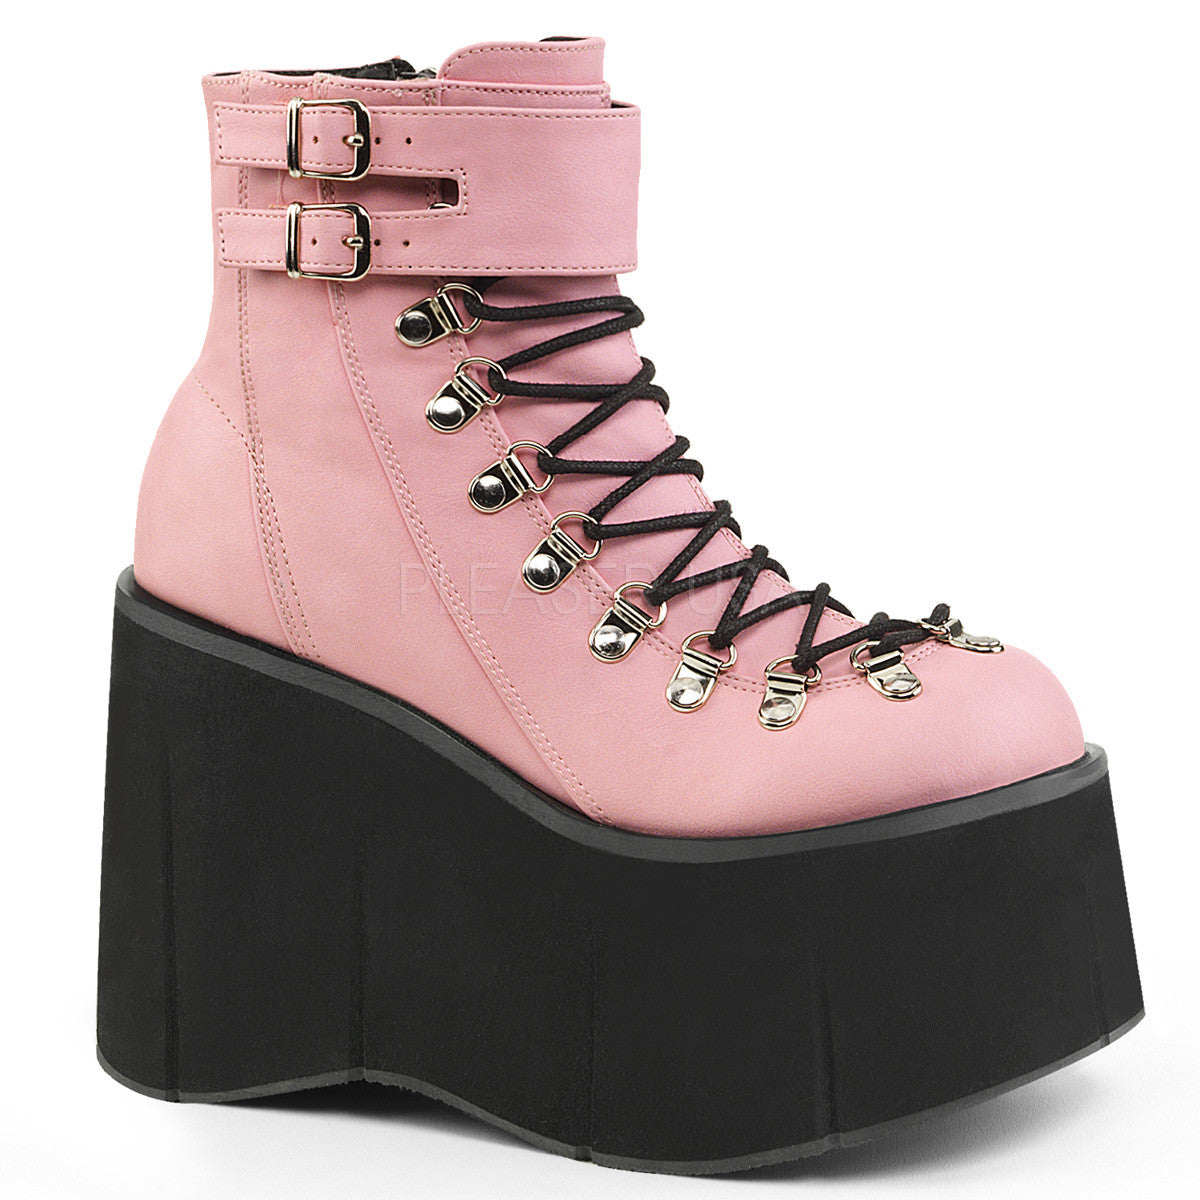 Sweetie Kera Lace-Up Platform Boots sale high quality outlet browse clearance websites big discount cheap price free shipping online 6LomypKGX